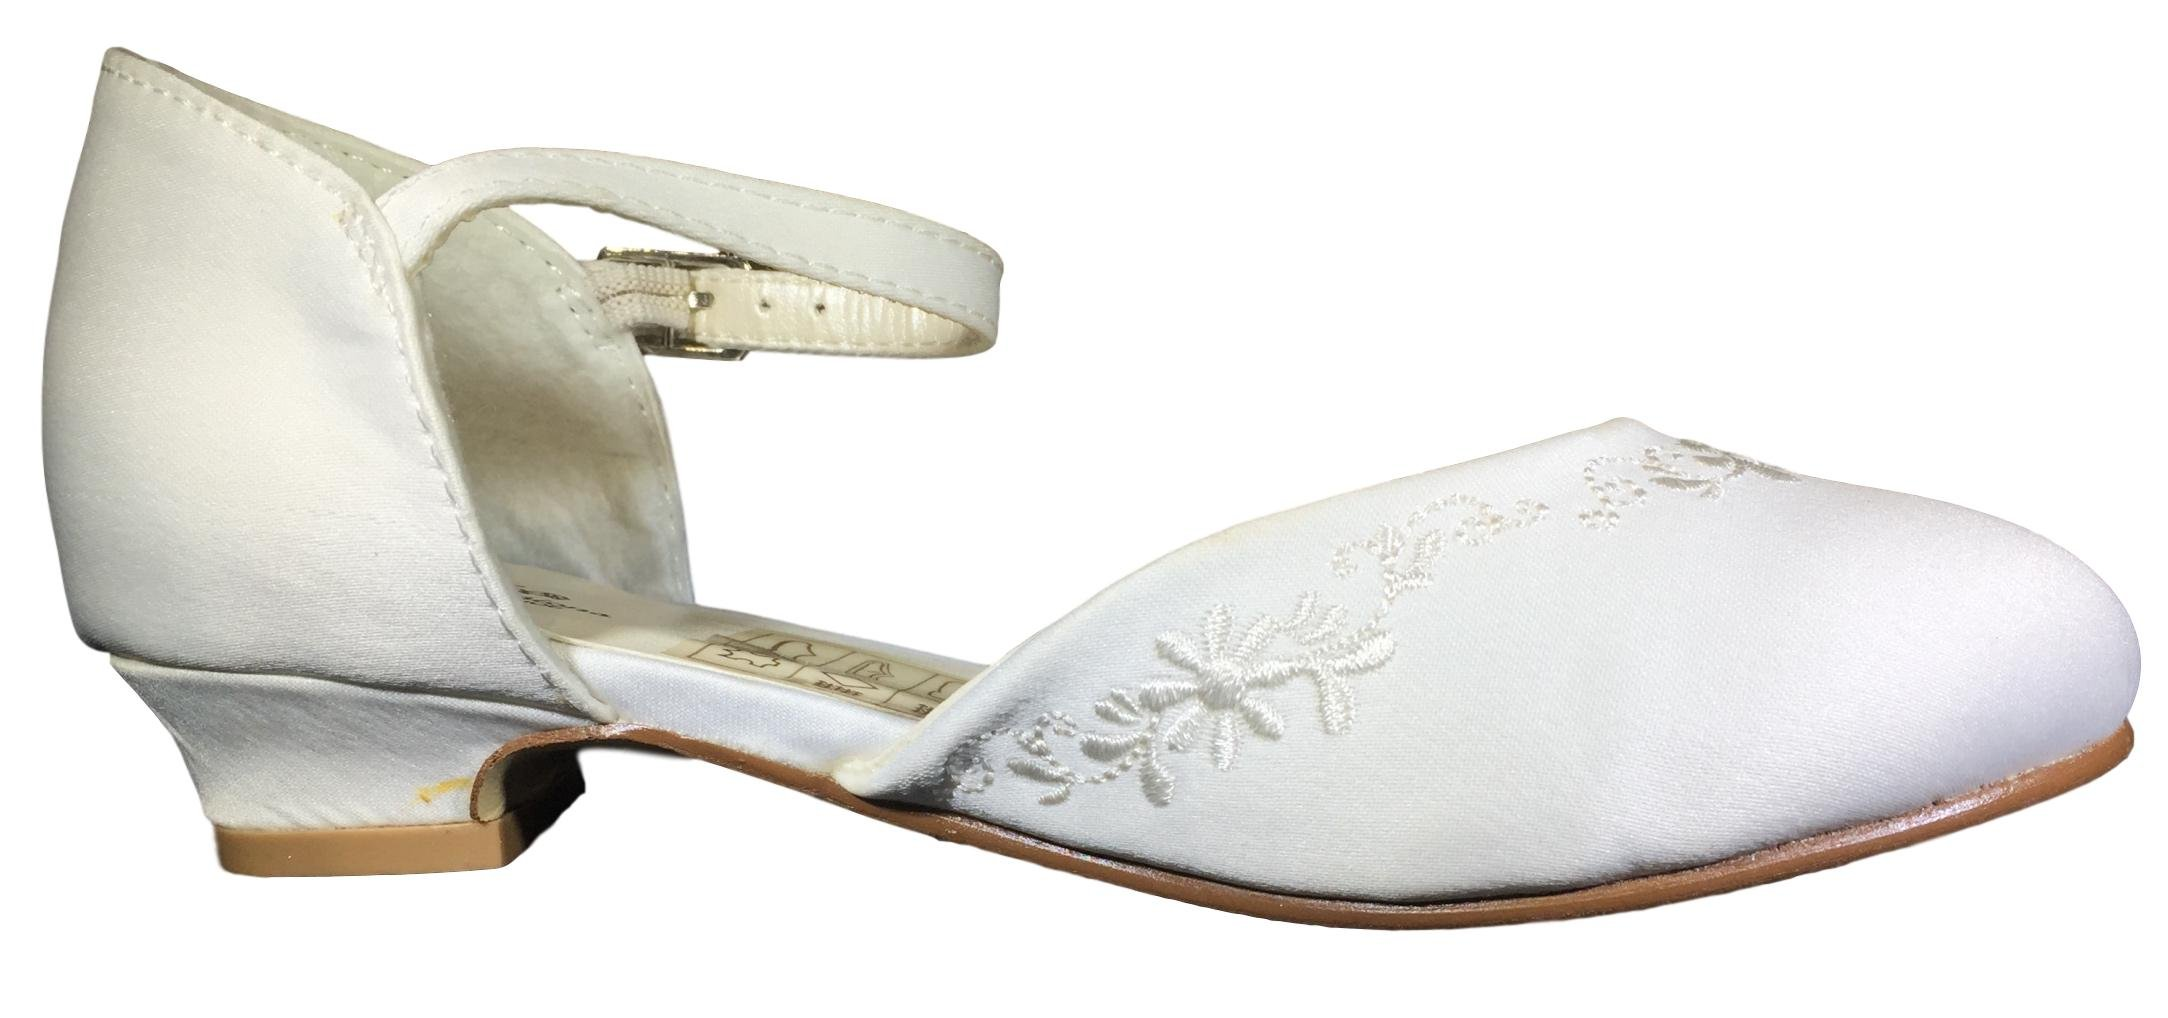 Saugus Girls Shoes Kids Dress Sandal for Wedding and School Event Any Special Occasions #191 (13) by Saugus